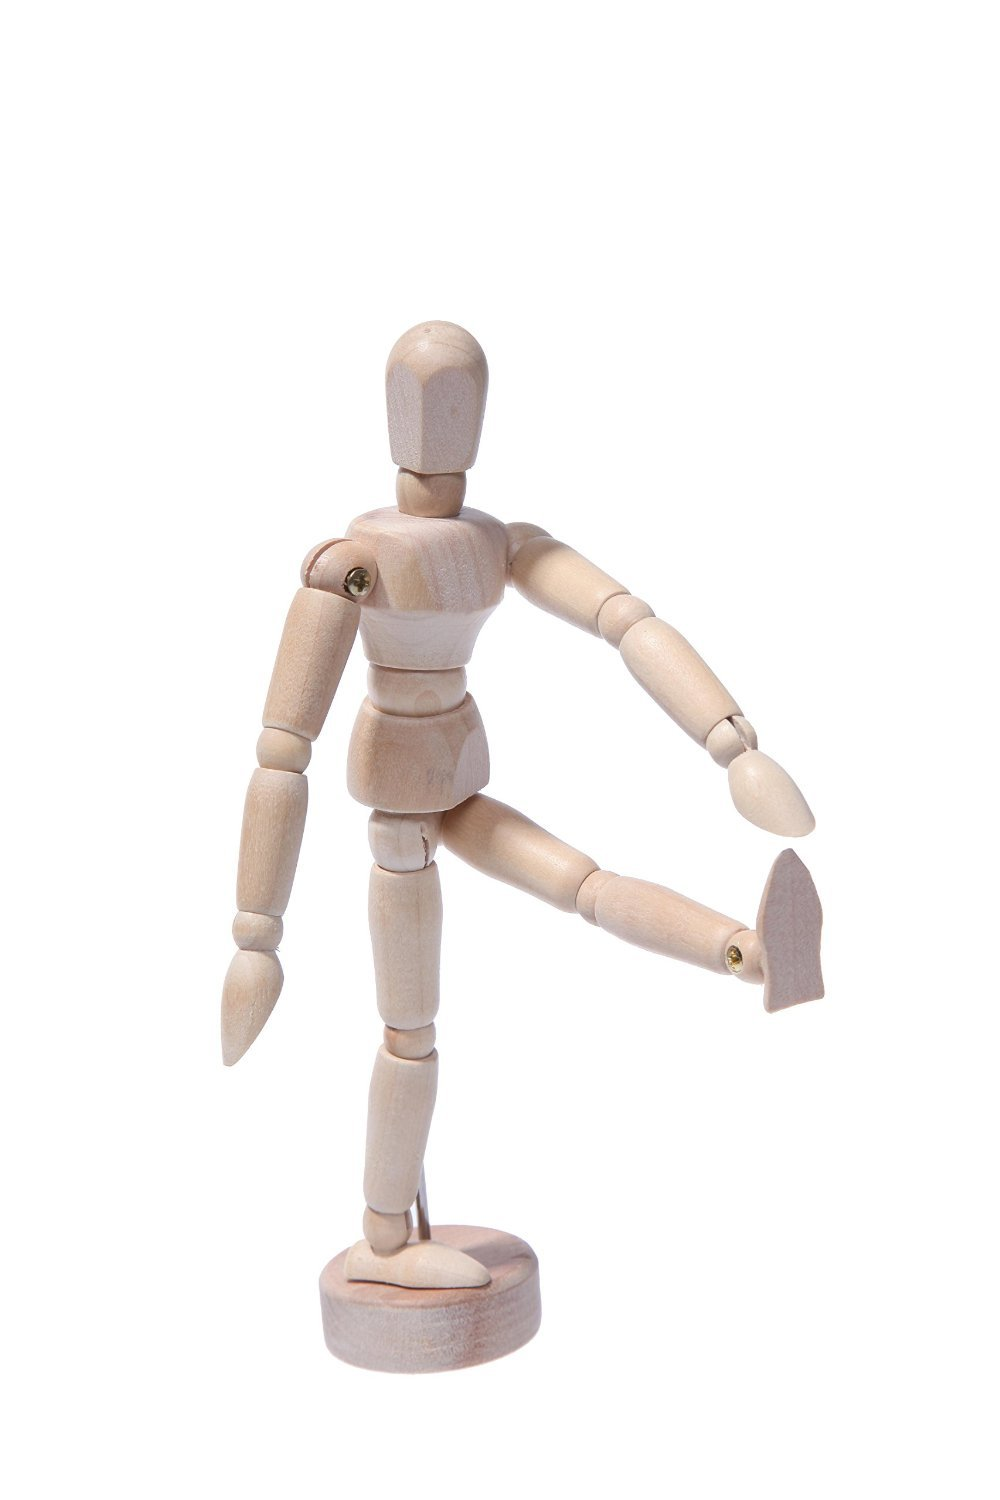 Wooden Sectioned Posable Body - Wood Full Body Art Mannequin - Posable Unisex Manikin - Art Supplies Drawing Model for Beginners - Mini Minikin Mannequin with Stand - Sketch Art Manikins - 5.5 inches Juvale 4336946136